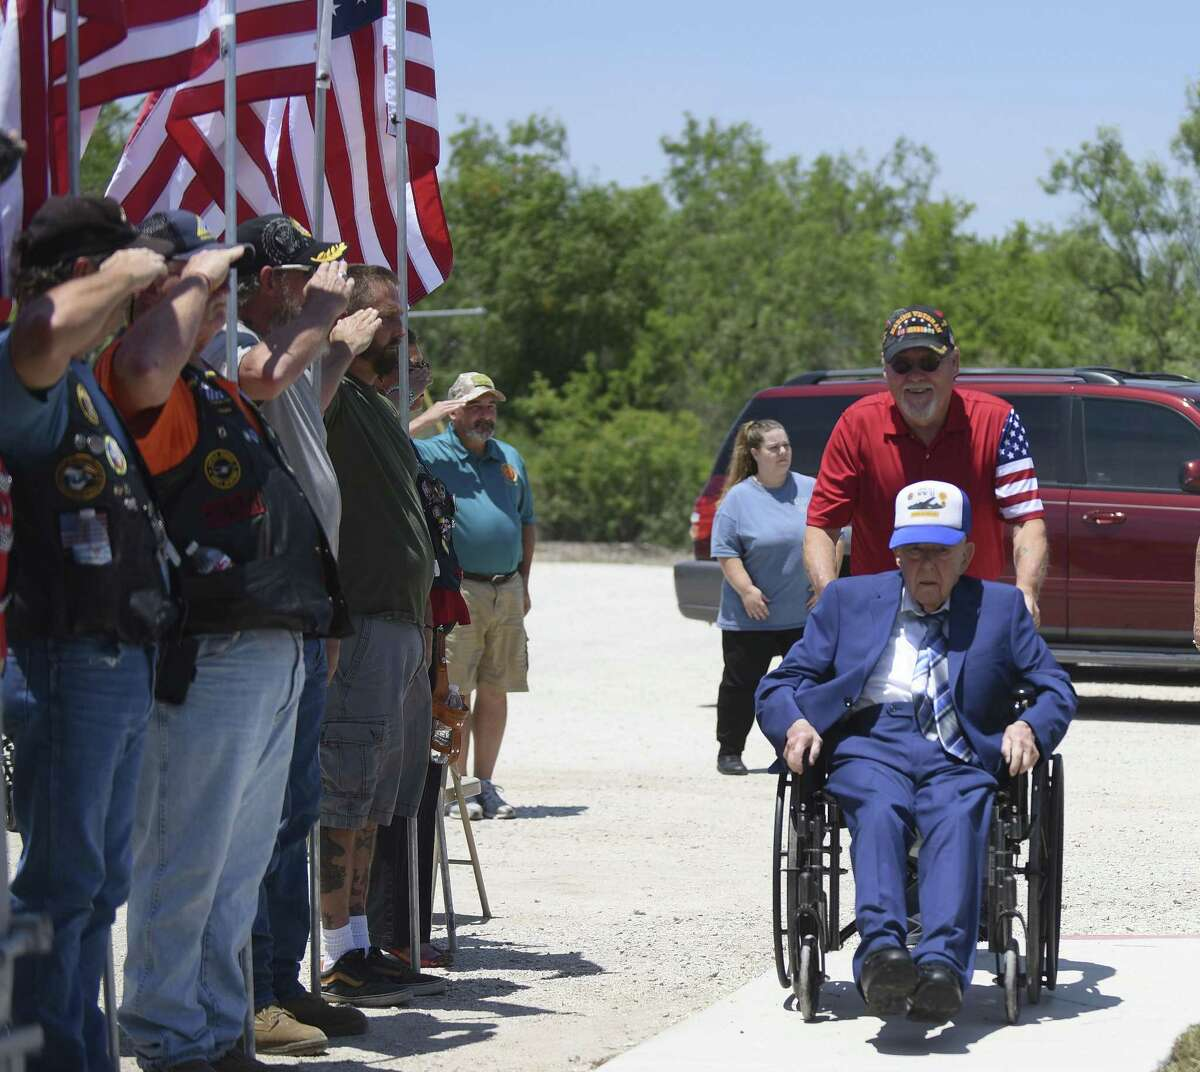 """Retired Air Force Maj. Woodrow """"Woody"""" Wilson Browning is greeted by American Legion Post 300 Riders, Patriot Guard, Combat Vets Association and Sons of American Legion Post 300 at American Legion Post 300 on his 100th birthday on Friday, July 27, 2018. Browning, a veteran of World War II, was the bombardier aboard the B-24 Liberator bomber called """"Nobody's Baby"""" when it was hit by anti-aircraft fire and shot down over Blechhammer, Germany, in 1944."""